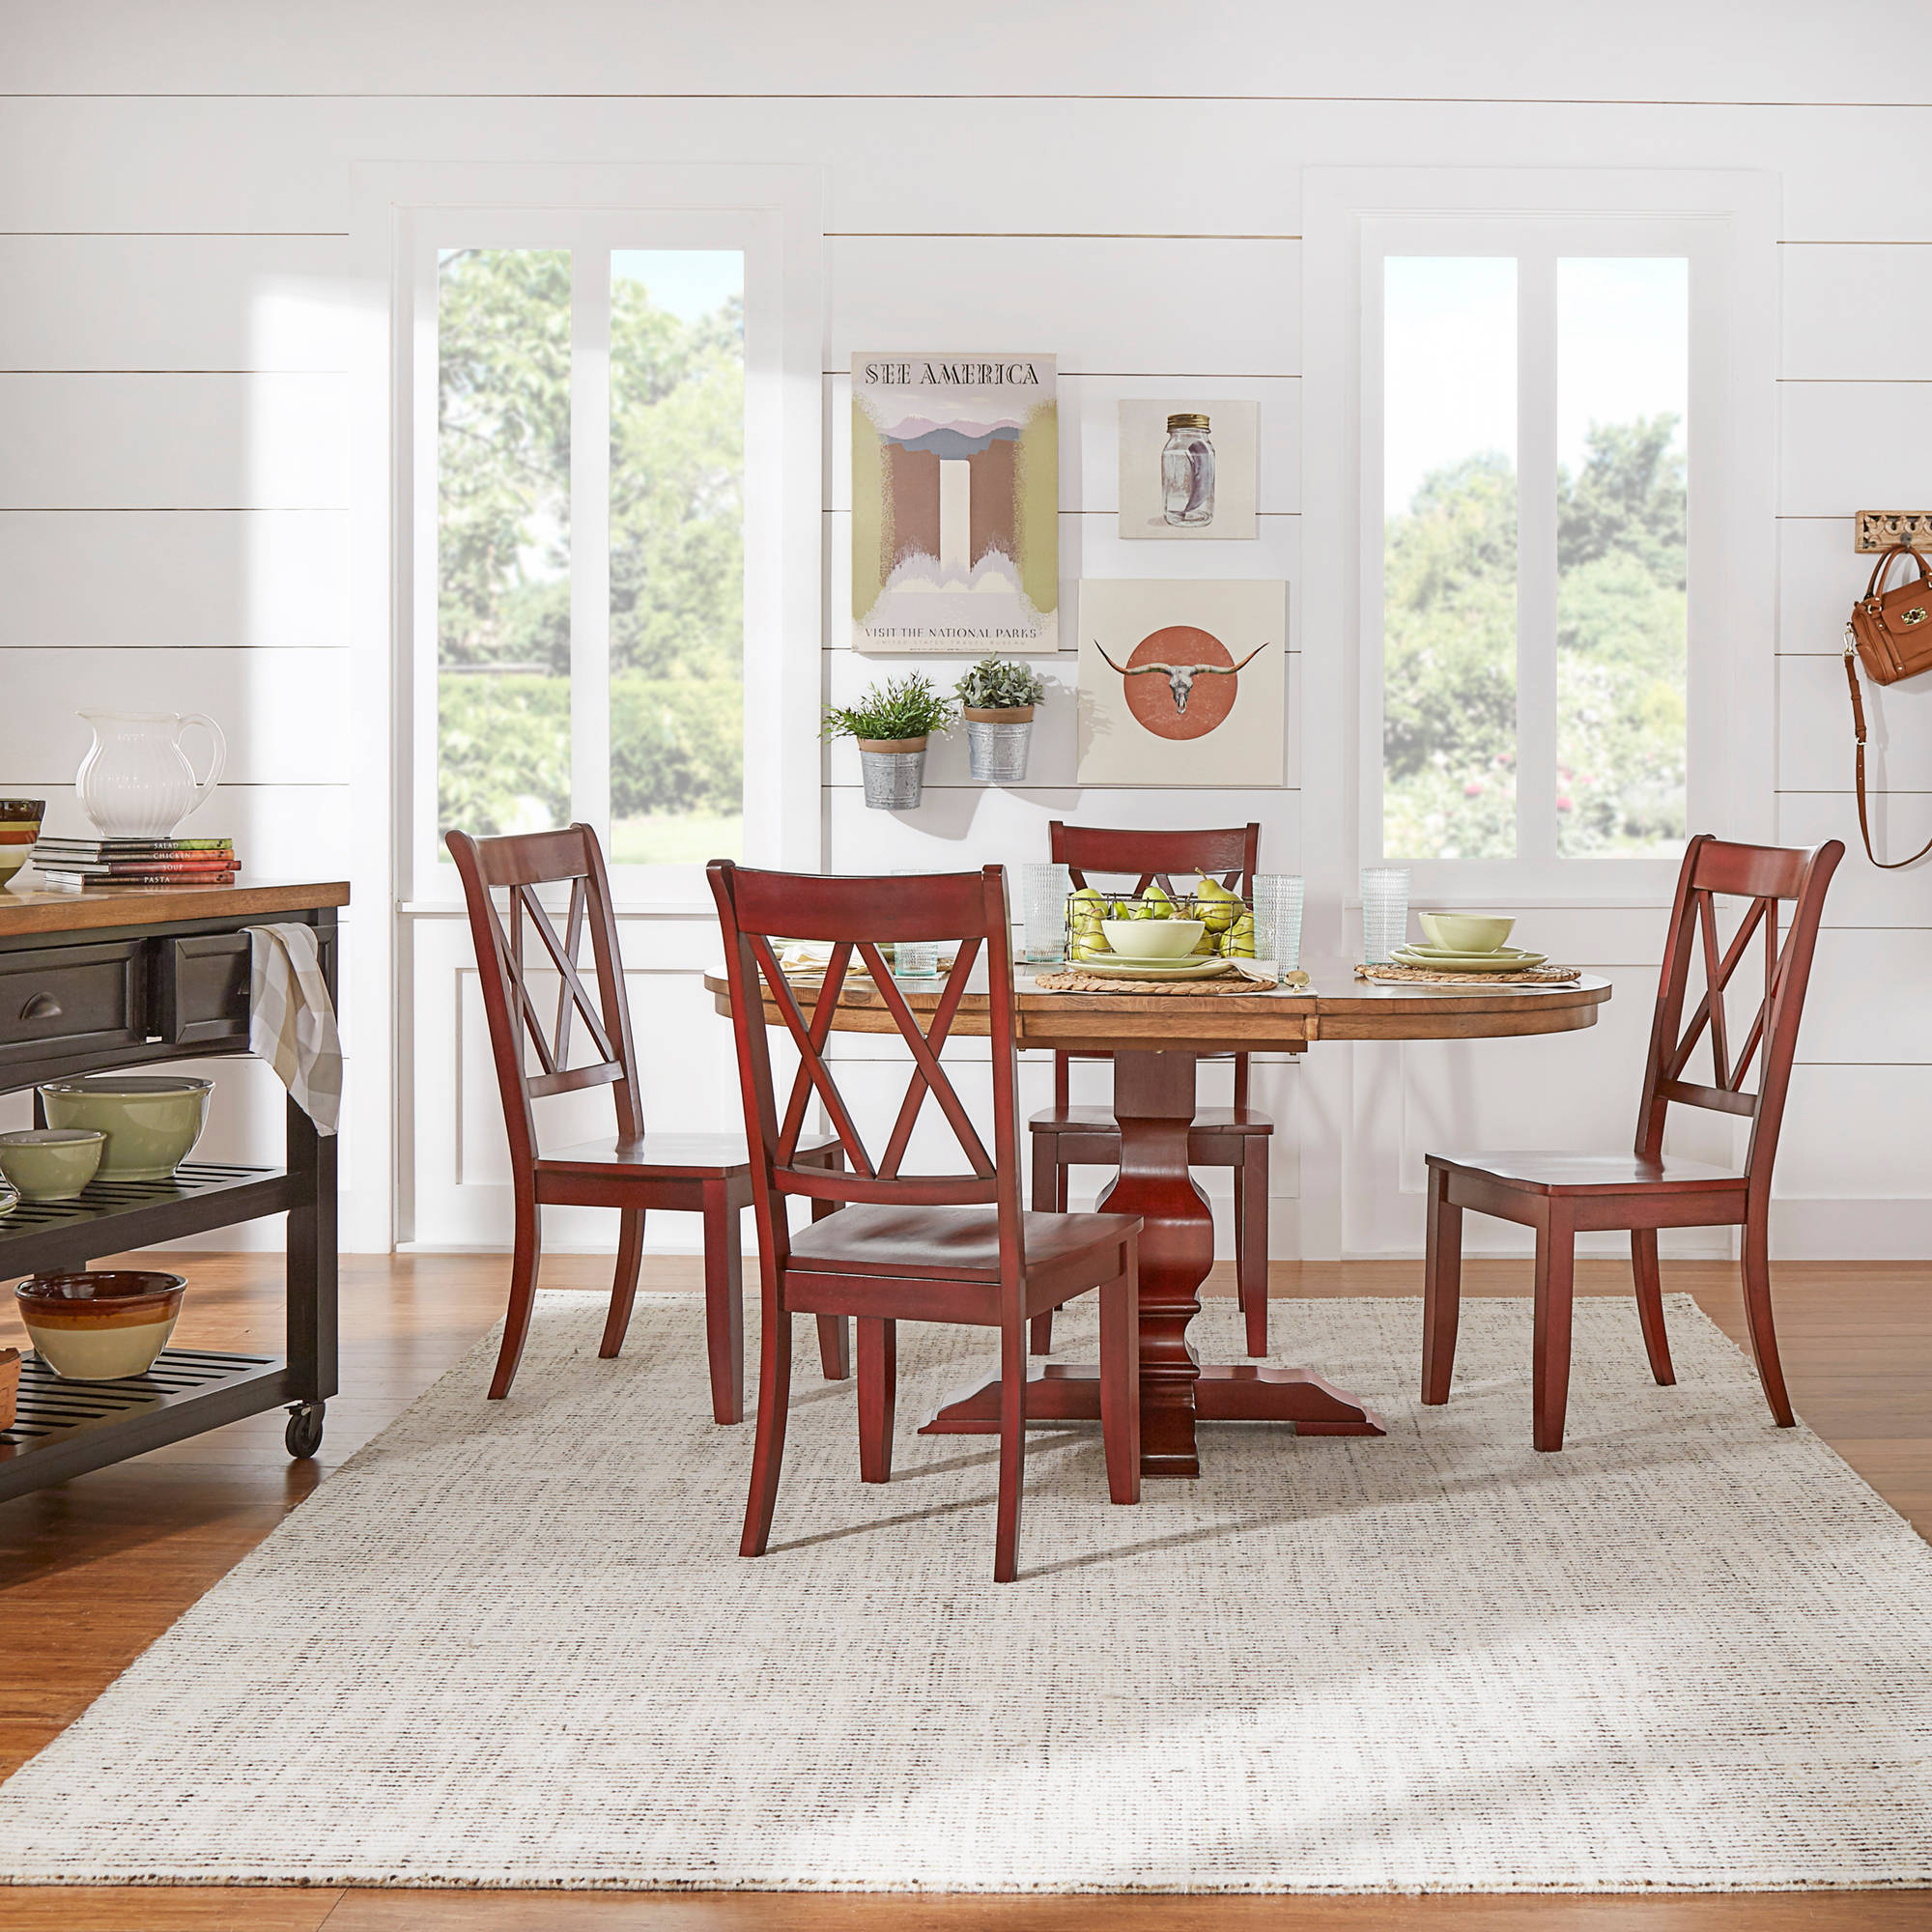 "Weston Home 5-Piece 60"" Oval Dining Set, with Oak and Berry Red Table and Berry Red Cross Back Chairs"